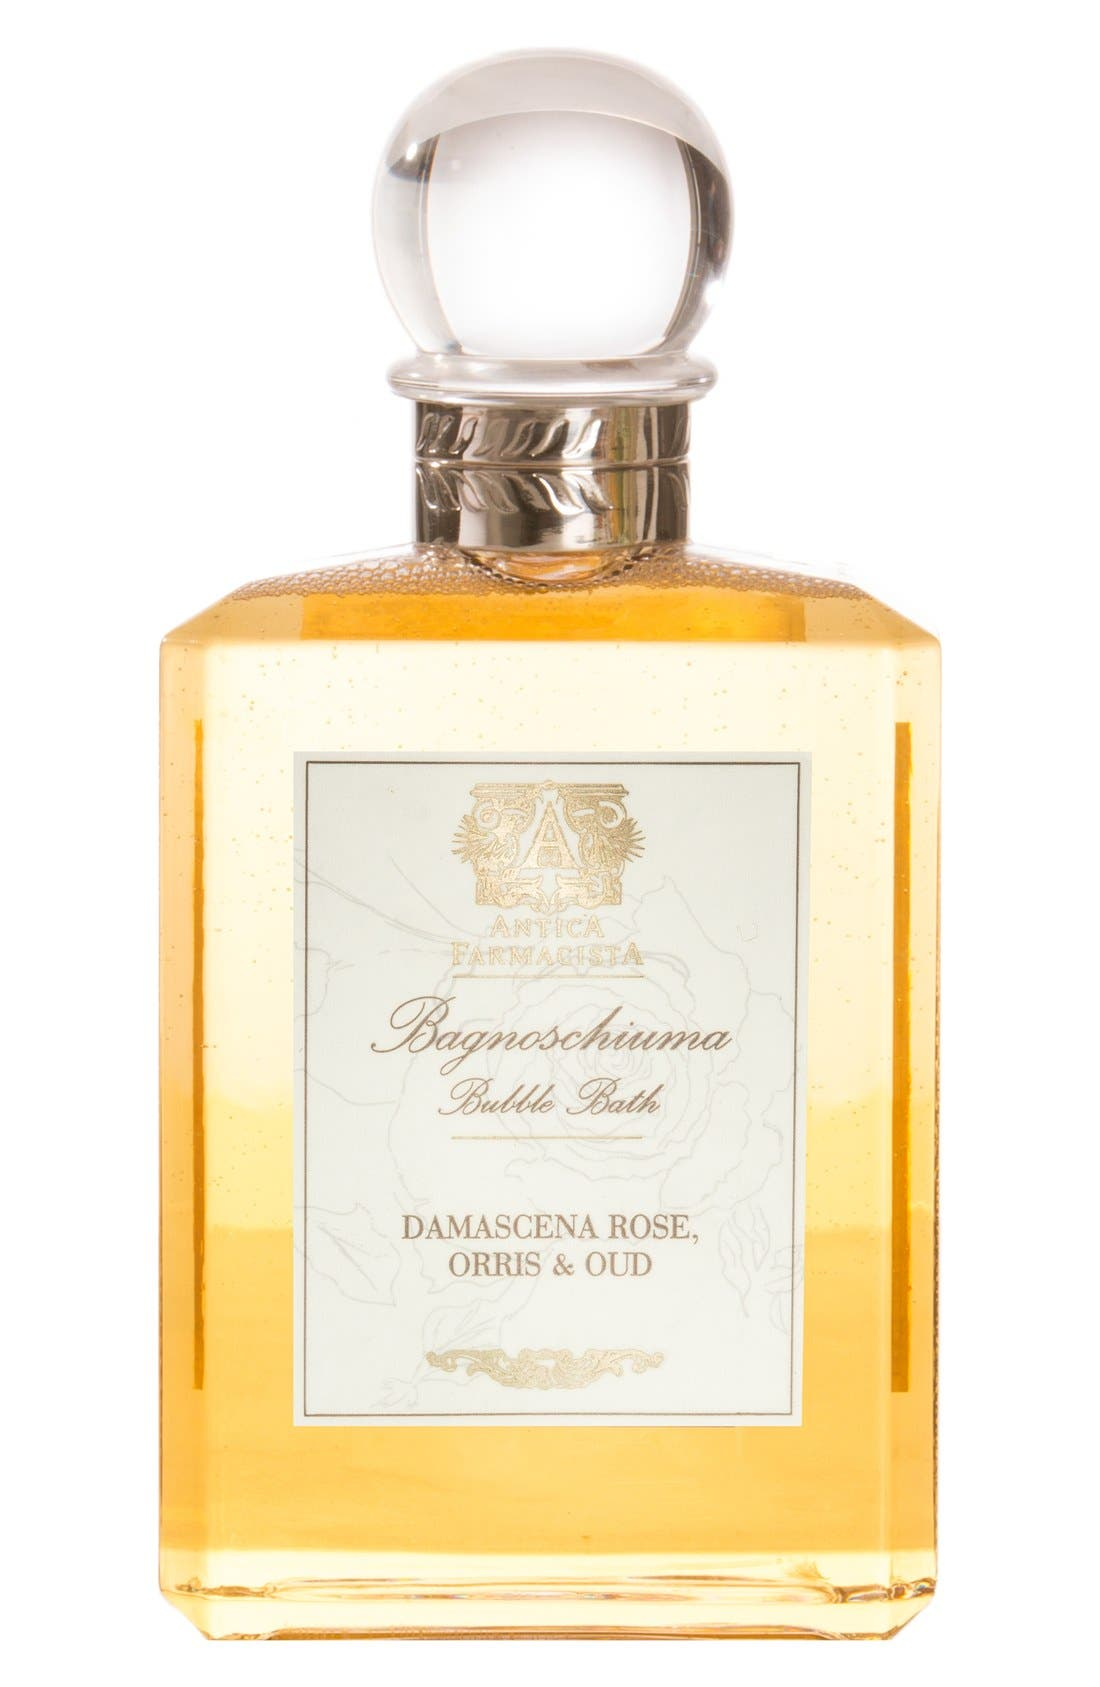 Antica Farmacista 'Damascena Rose, Orris & Oud' Bubble Bath